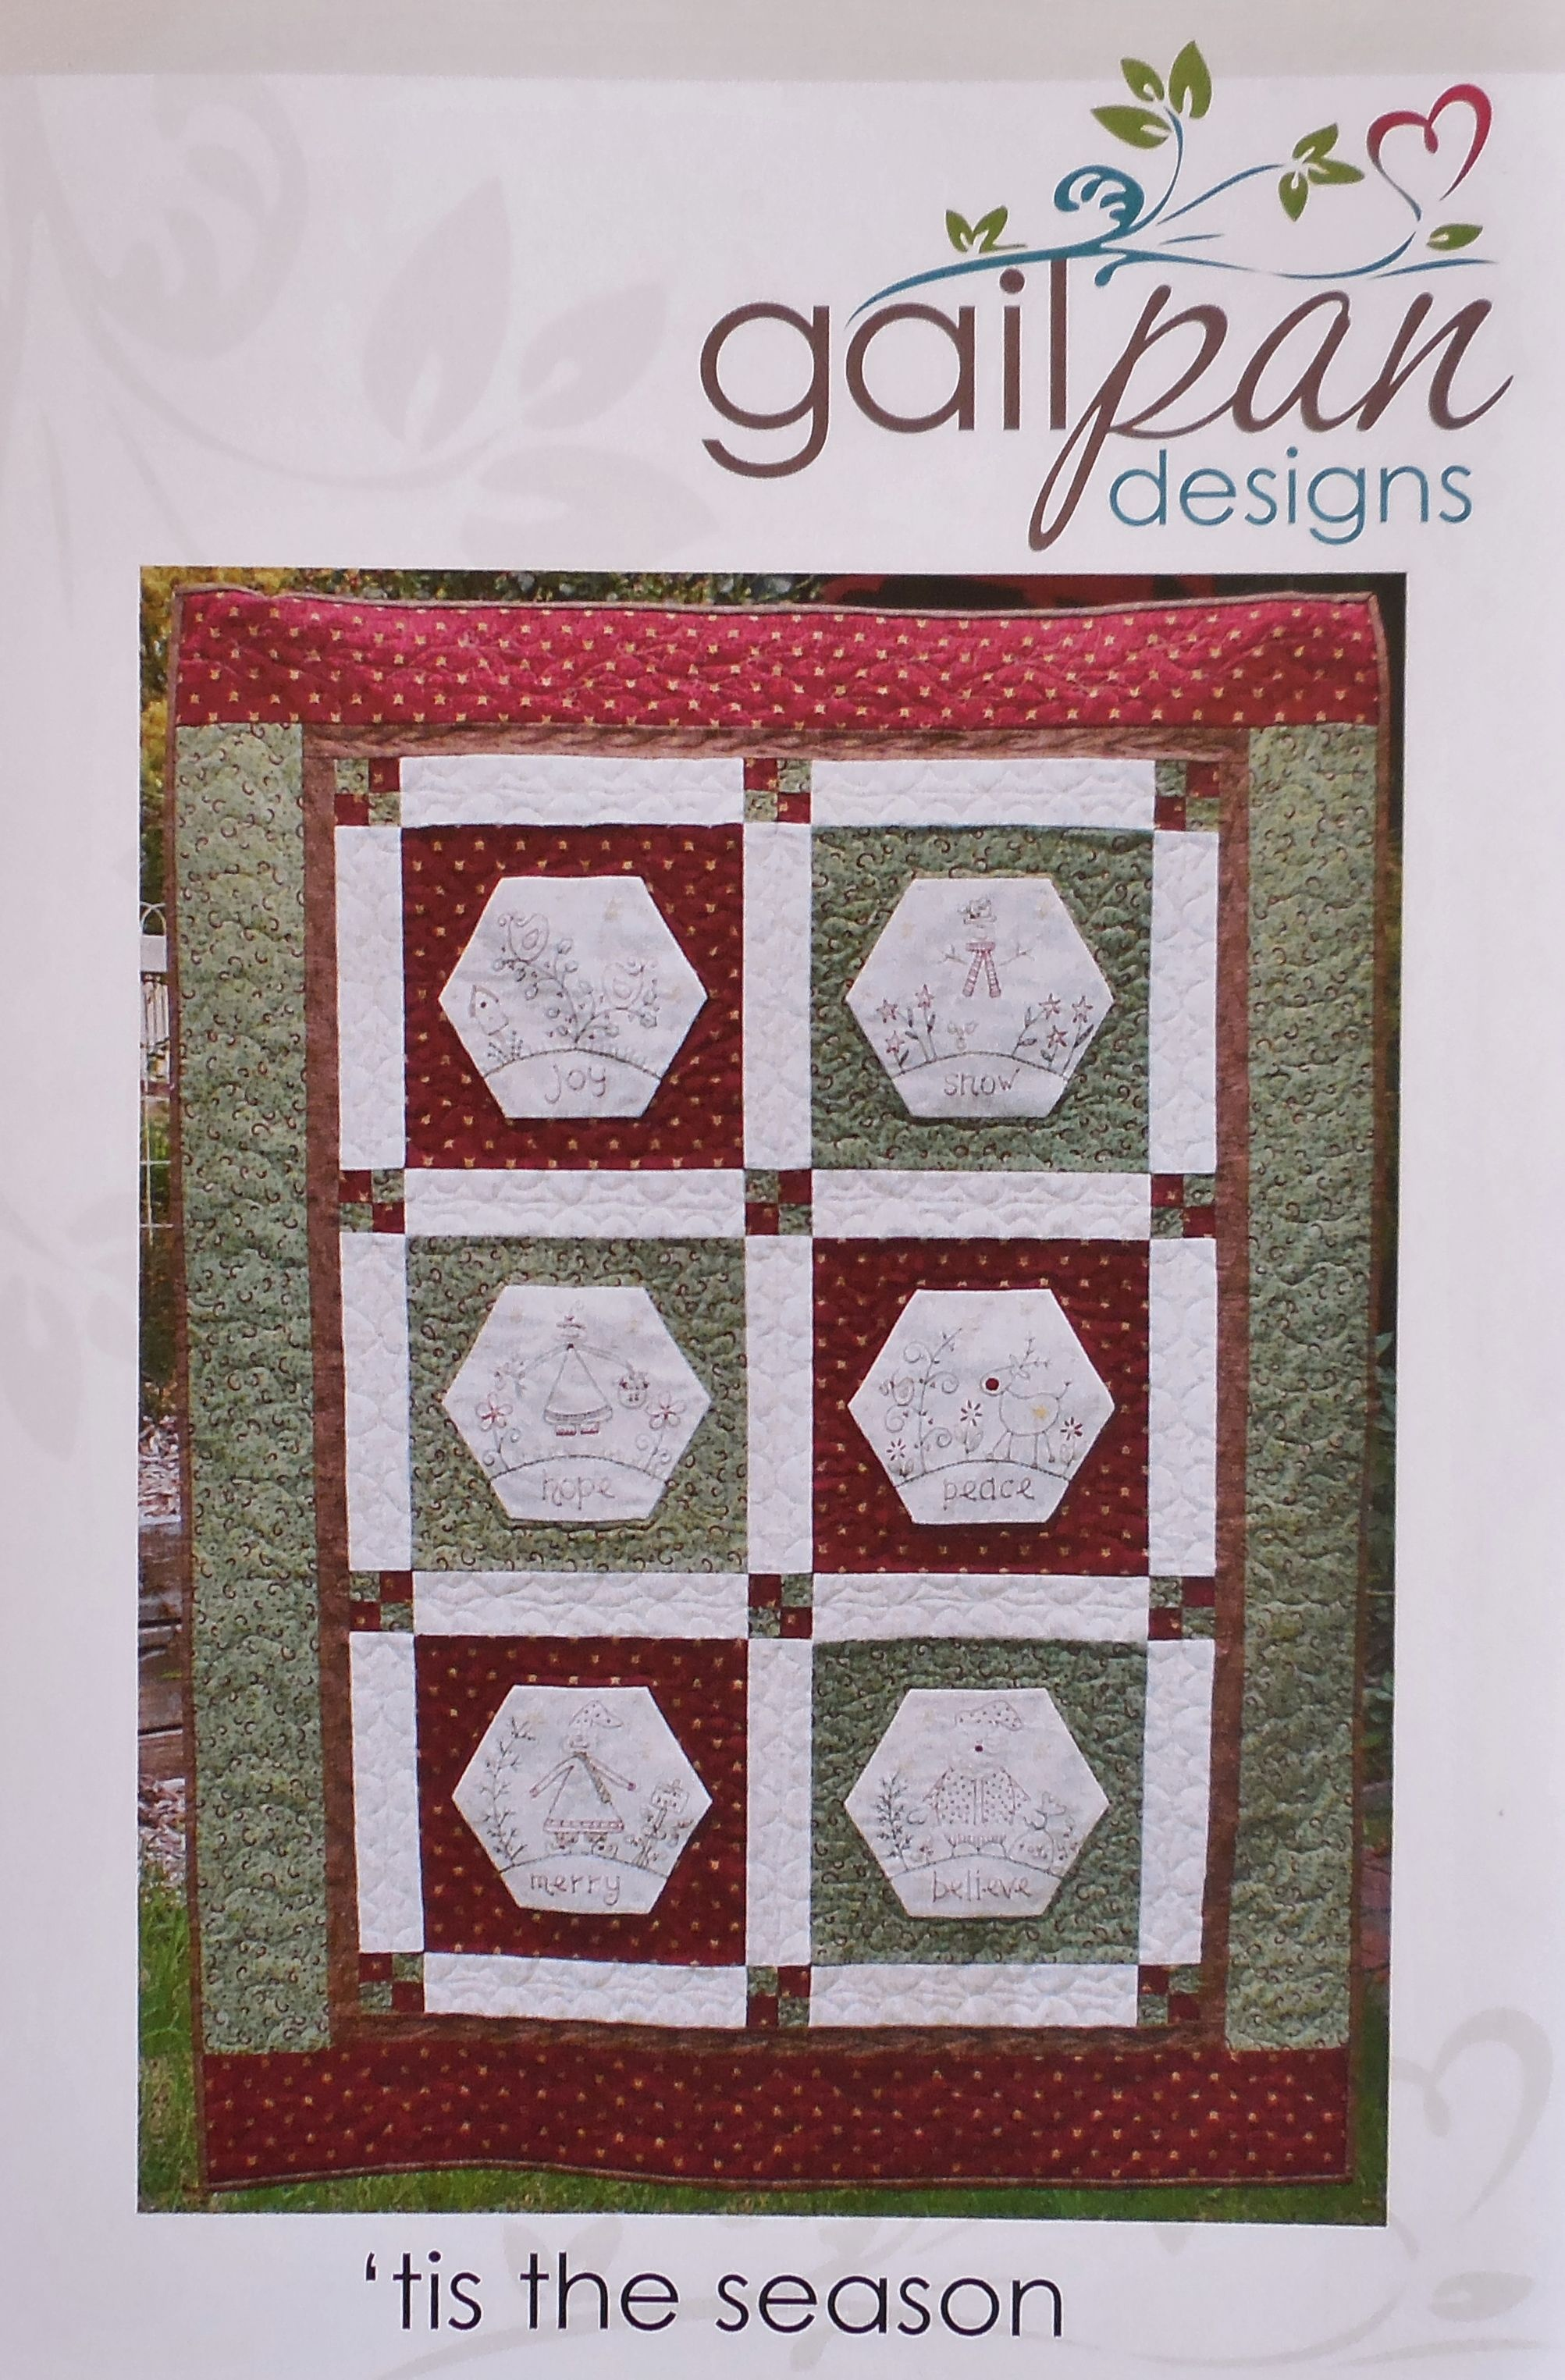 Pattern by Gail Pan Designs - 'Tis the Season - Finished size ... : tis the season quilt book - Adamdwight.com